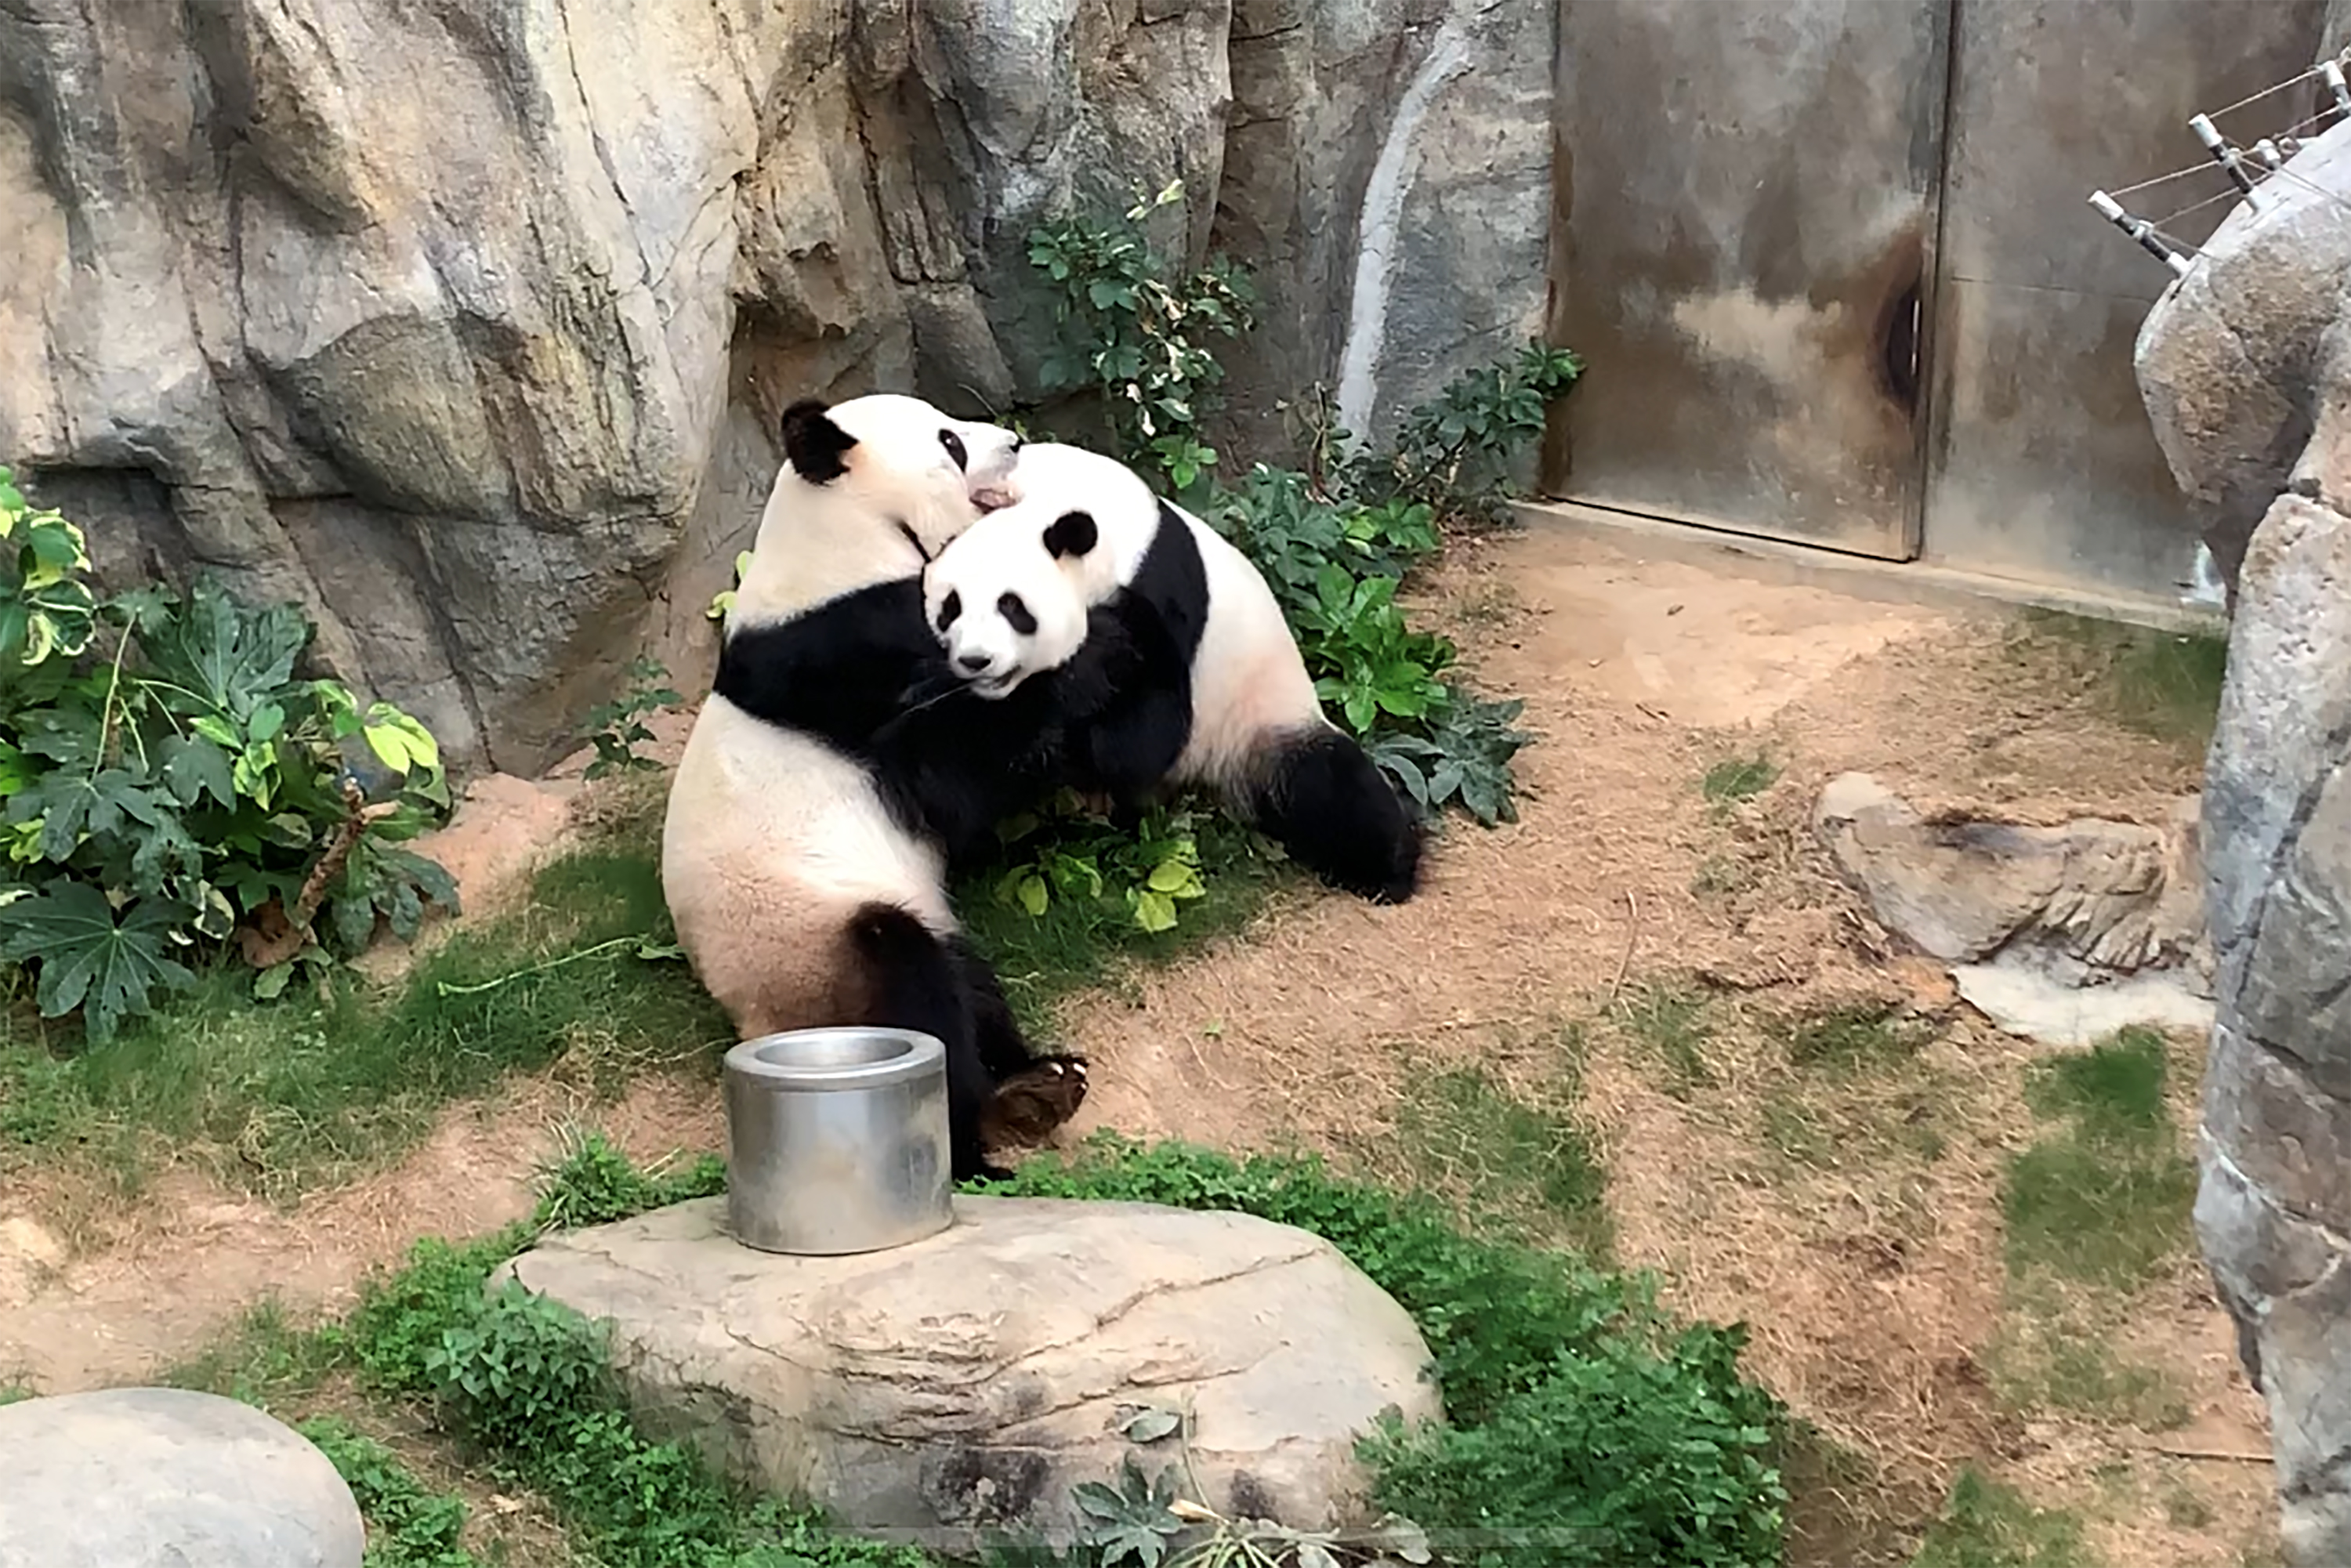 Giant pandas Ying Ying and Le Le are seen before mating at Ocean Park, Hong Kong, April 6, 2020. Stuck at home with not much else to do, pandas finally decided to give mating a go after a decade of dodging the issue. (Photo by Ocean Park Hong Kong)